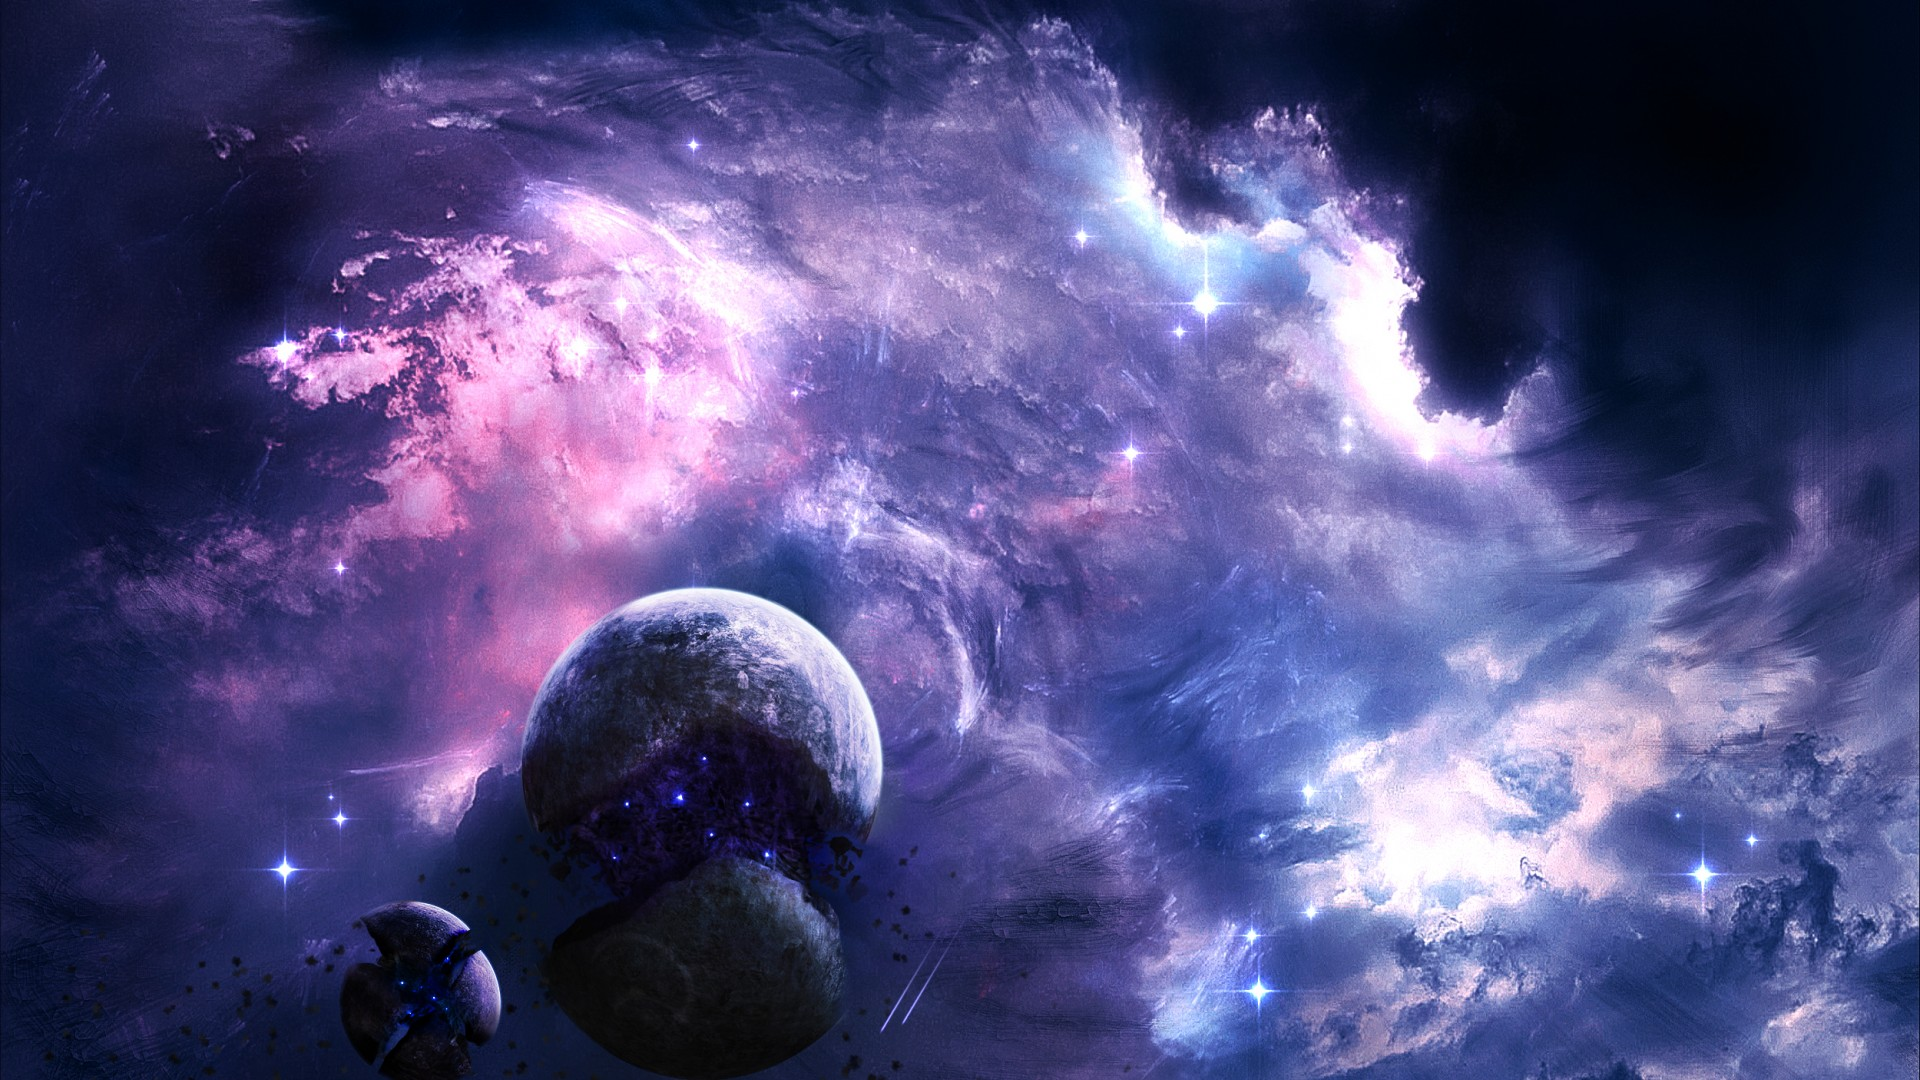 Wallpapers HD Space